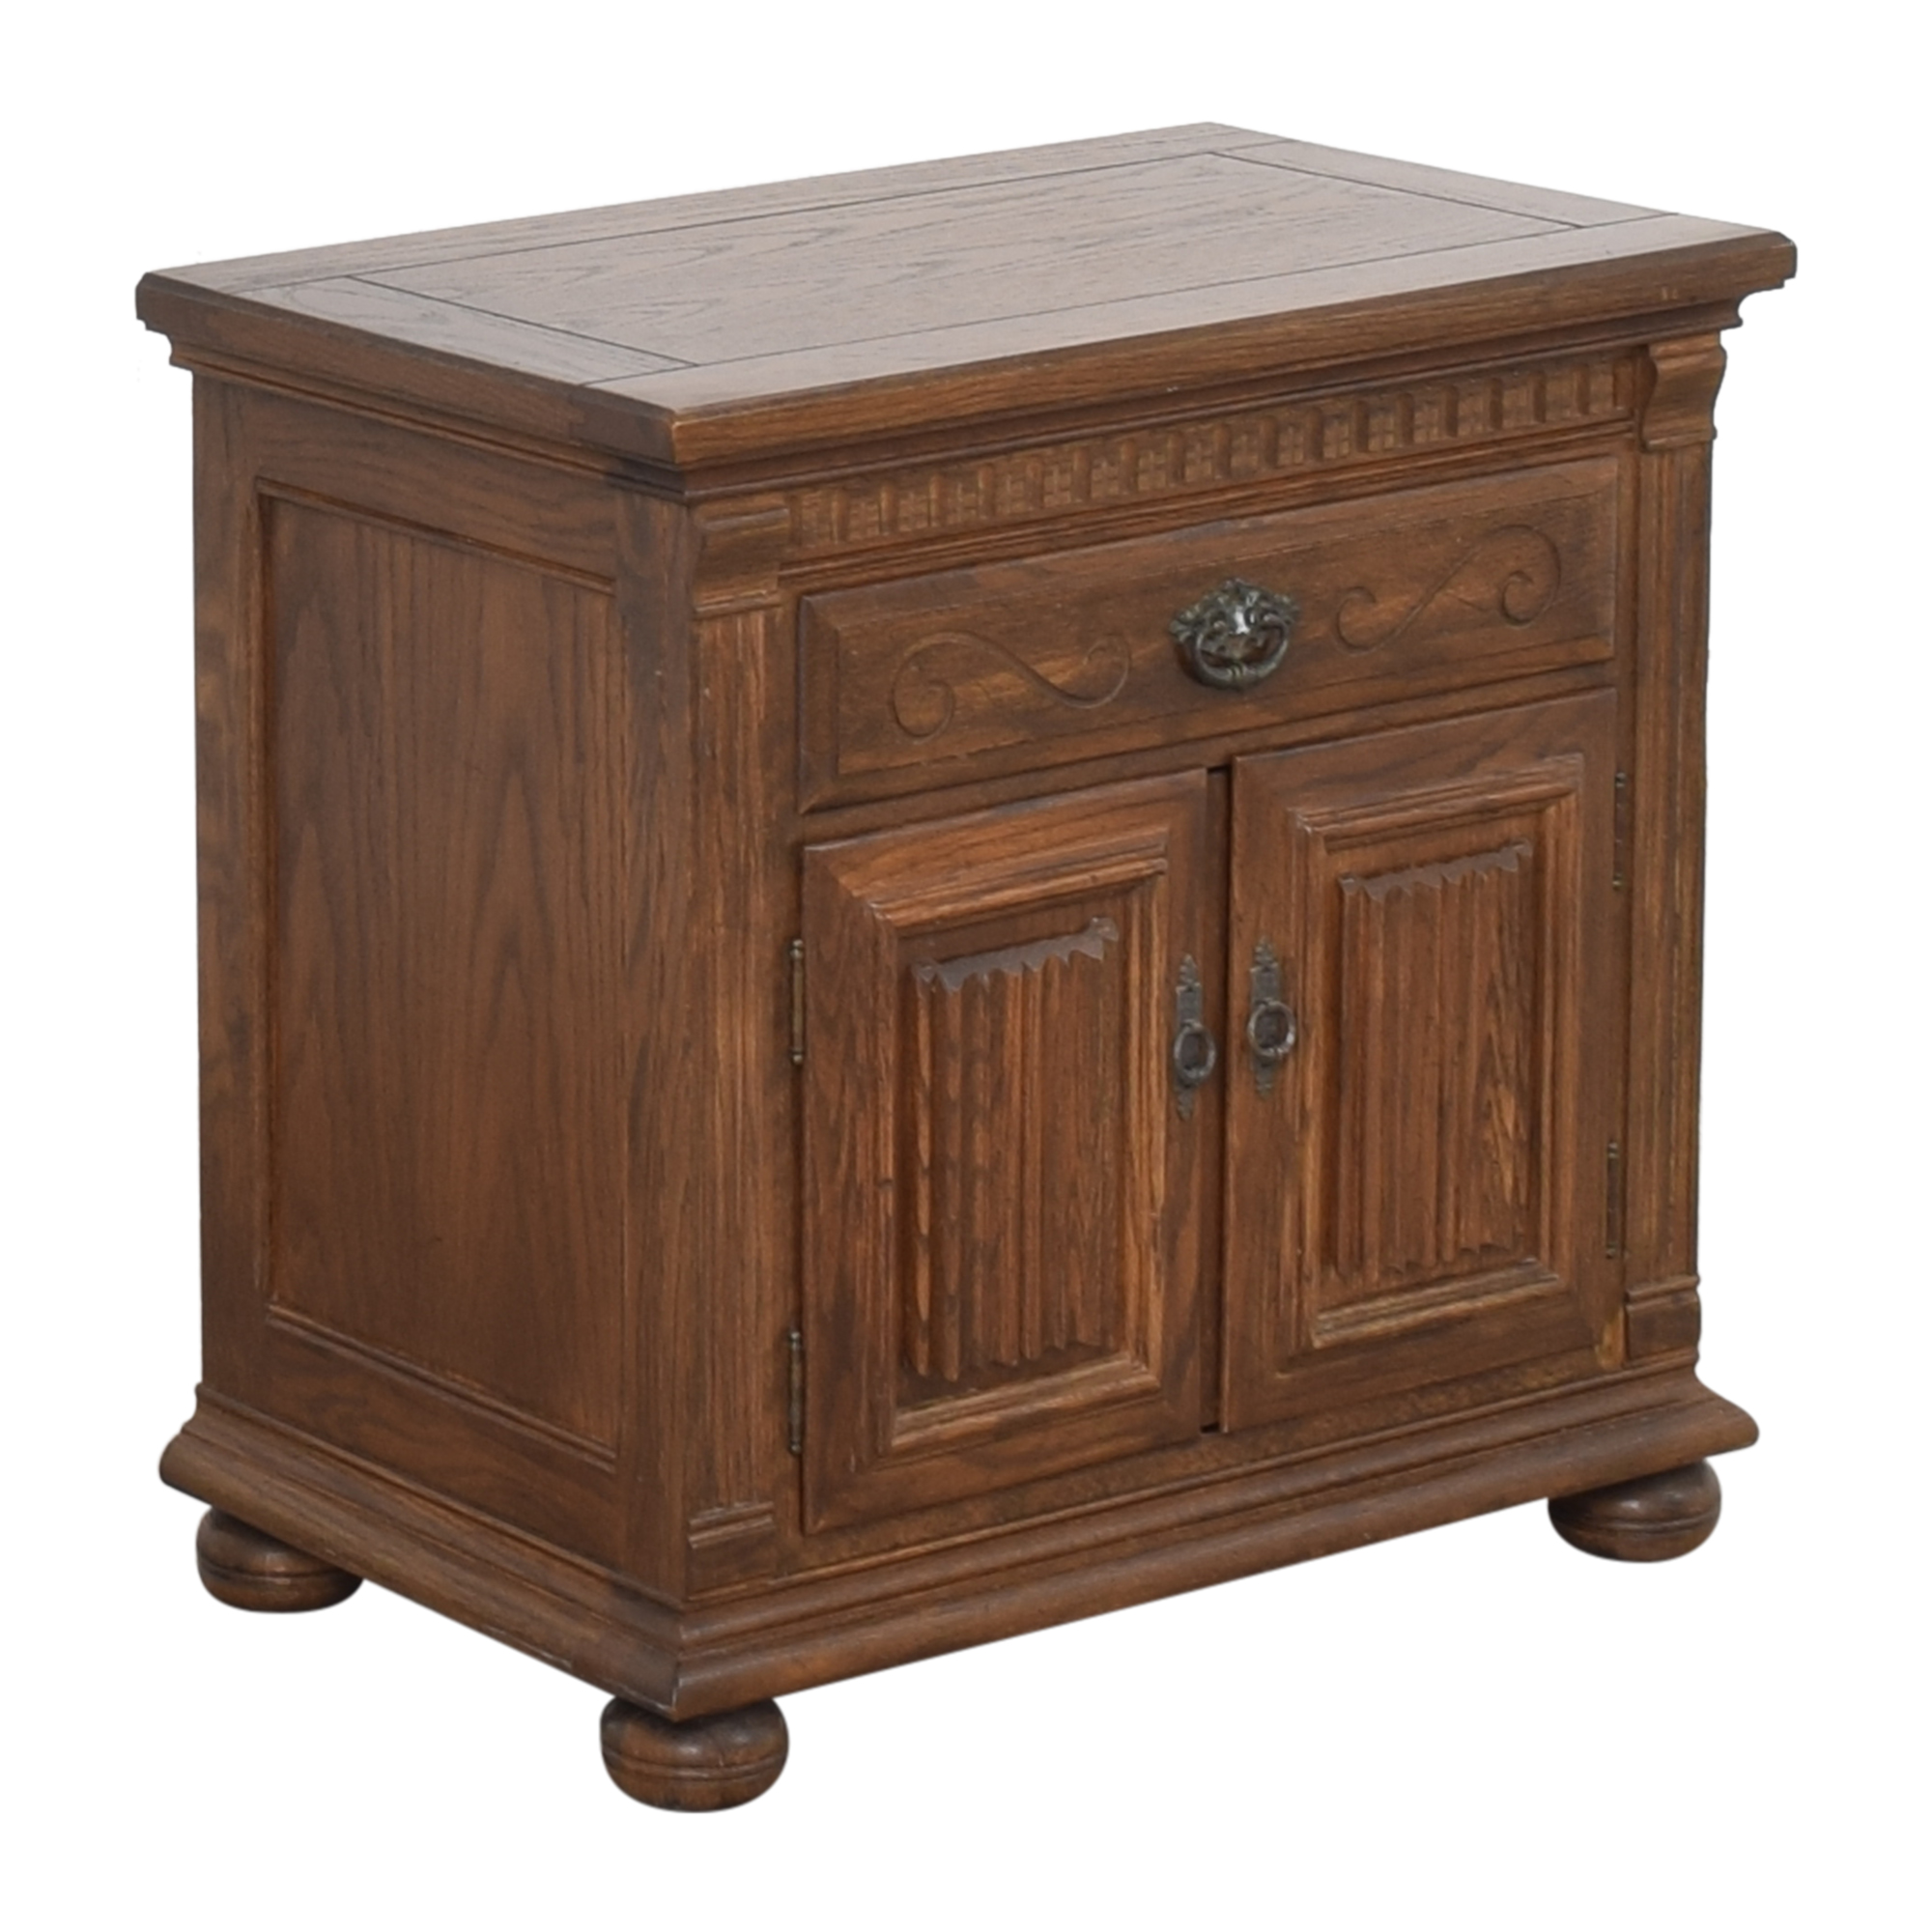 Ethan Allen Ethan Allen Royal Charter Commode Nightstand  discount